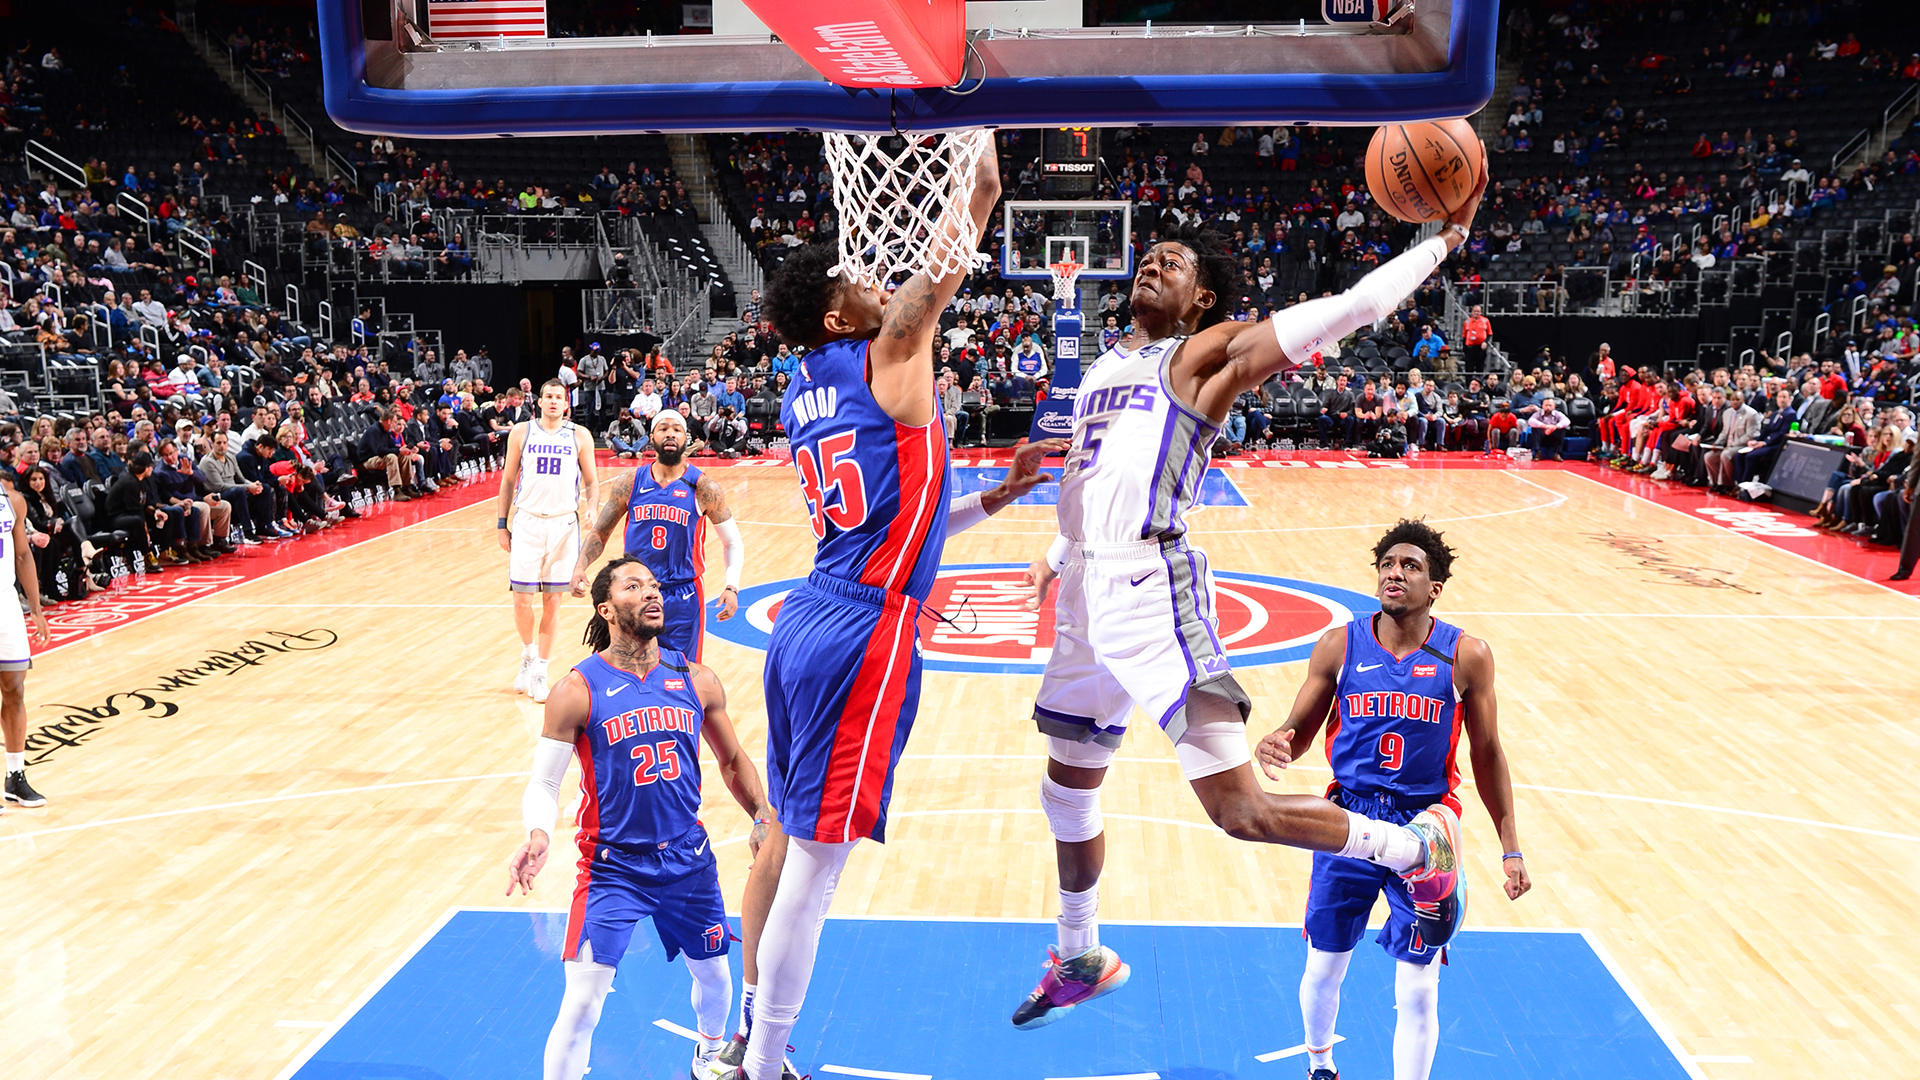 Top 100 Dunks From 2019-20 Season